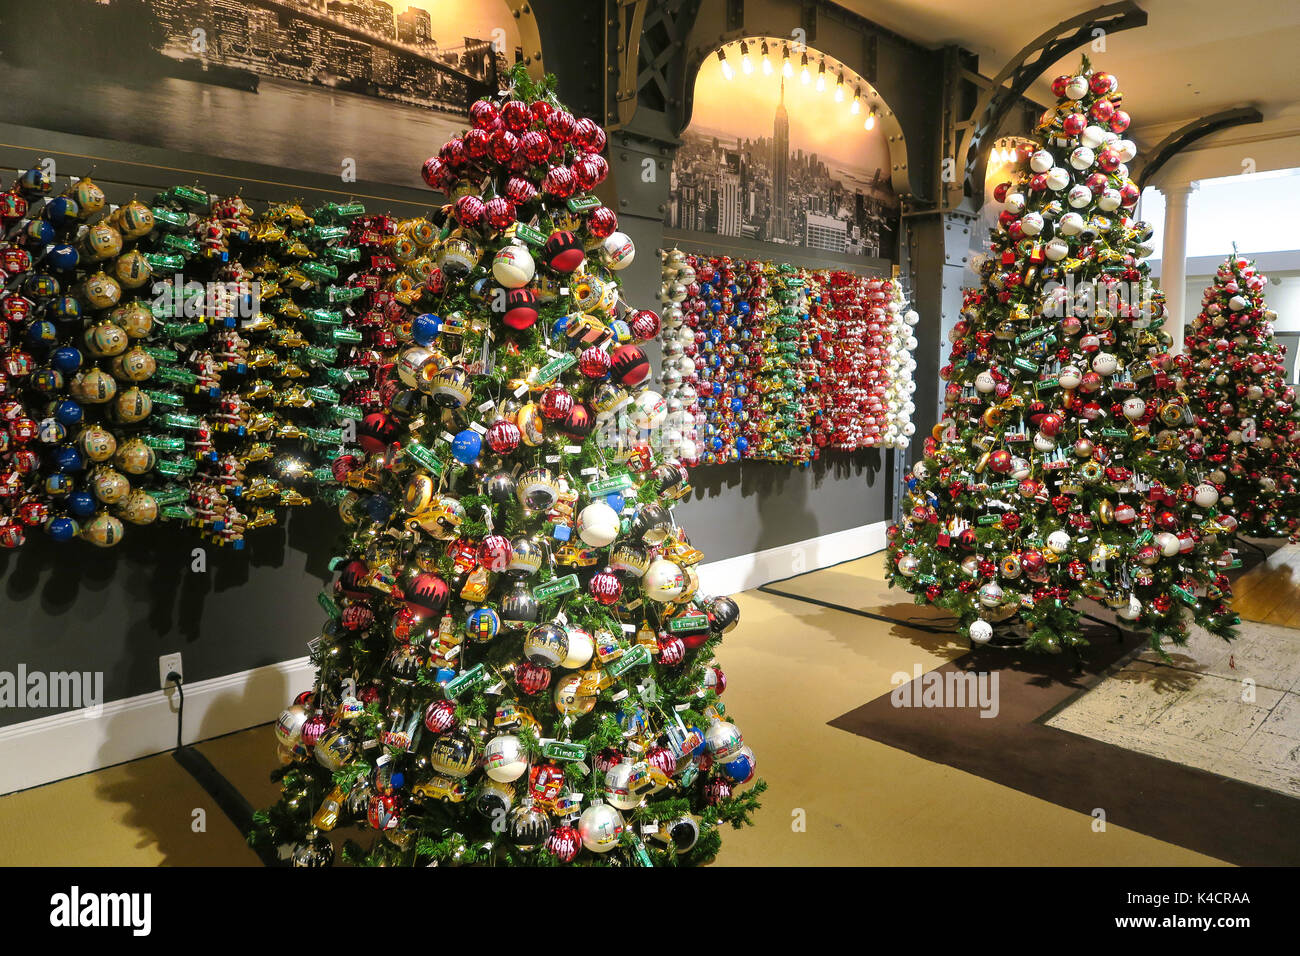 macys department store christmas displays nyc stock image - Macys Christmas Decorations